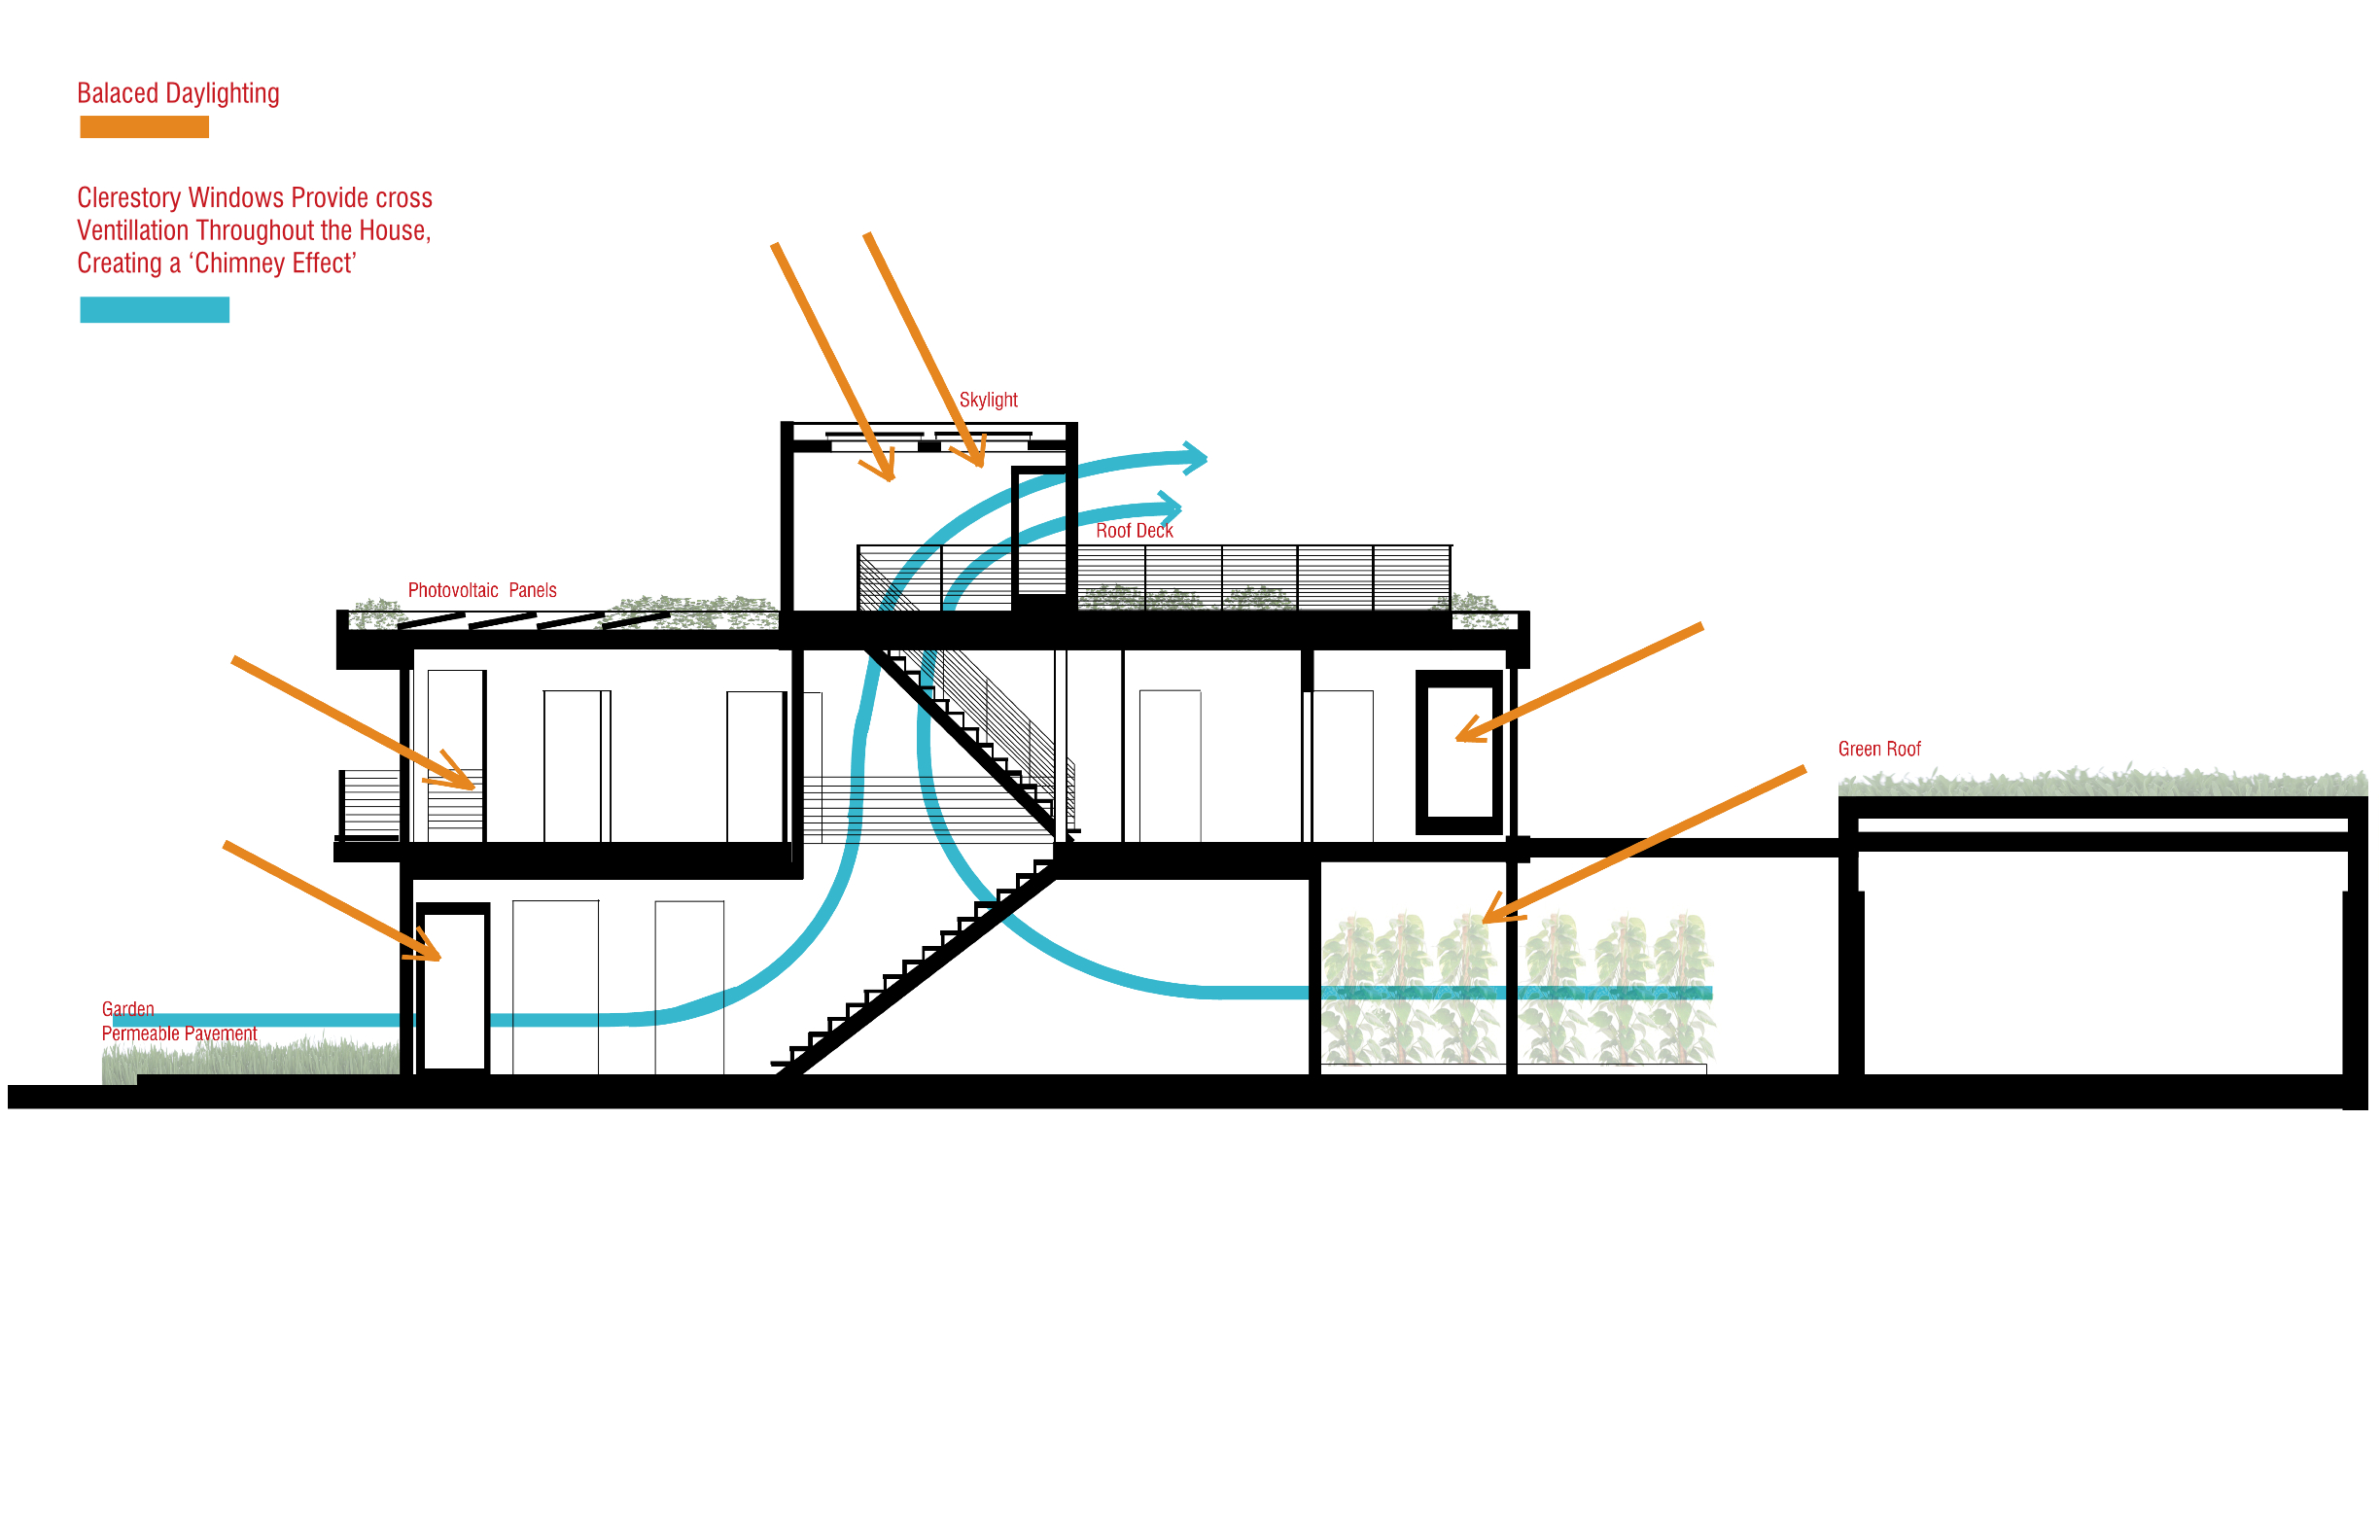 architecture section diagram omron relay my4n wiring assignment 5 sustainable thinking through the eyes of